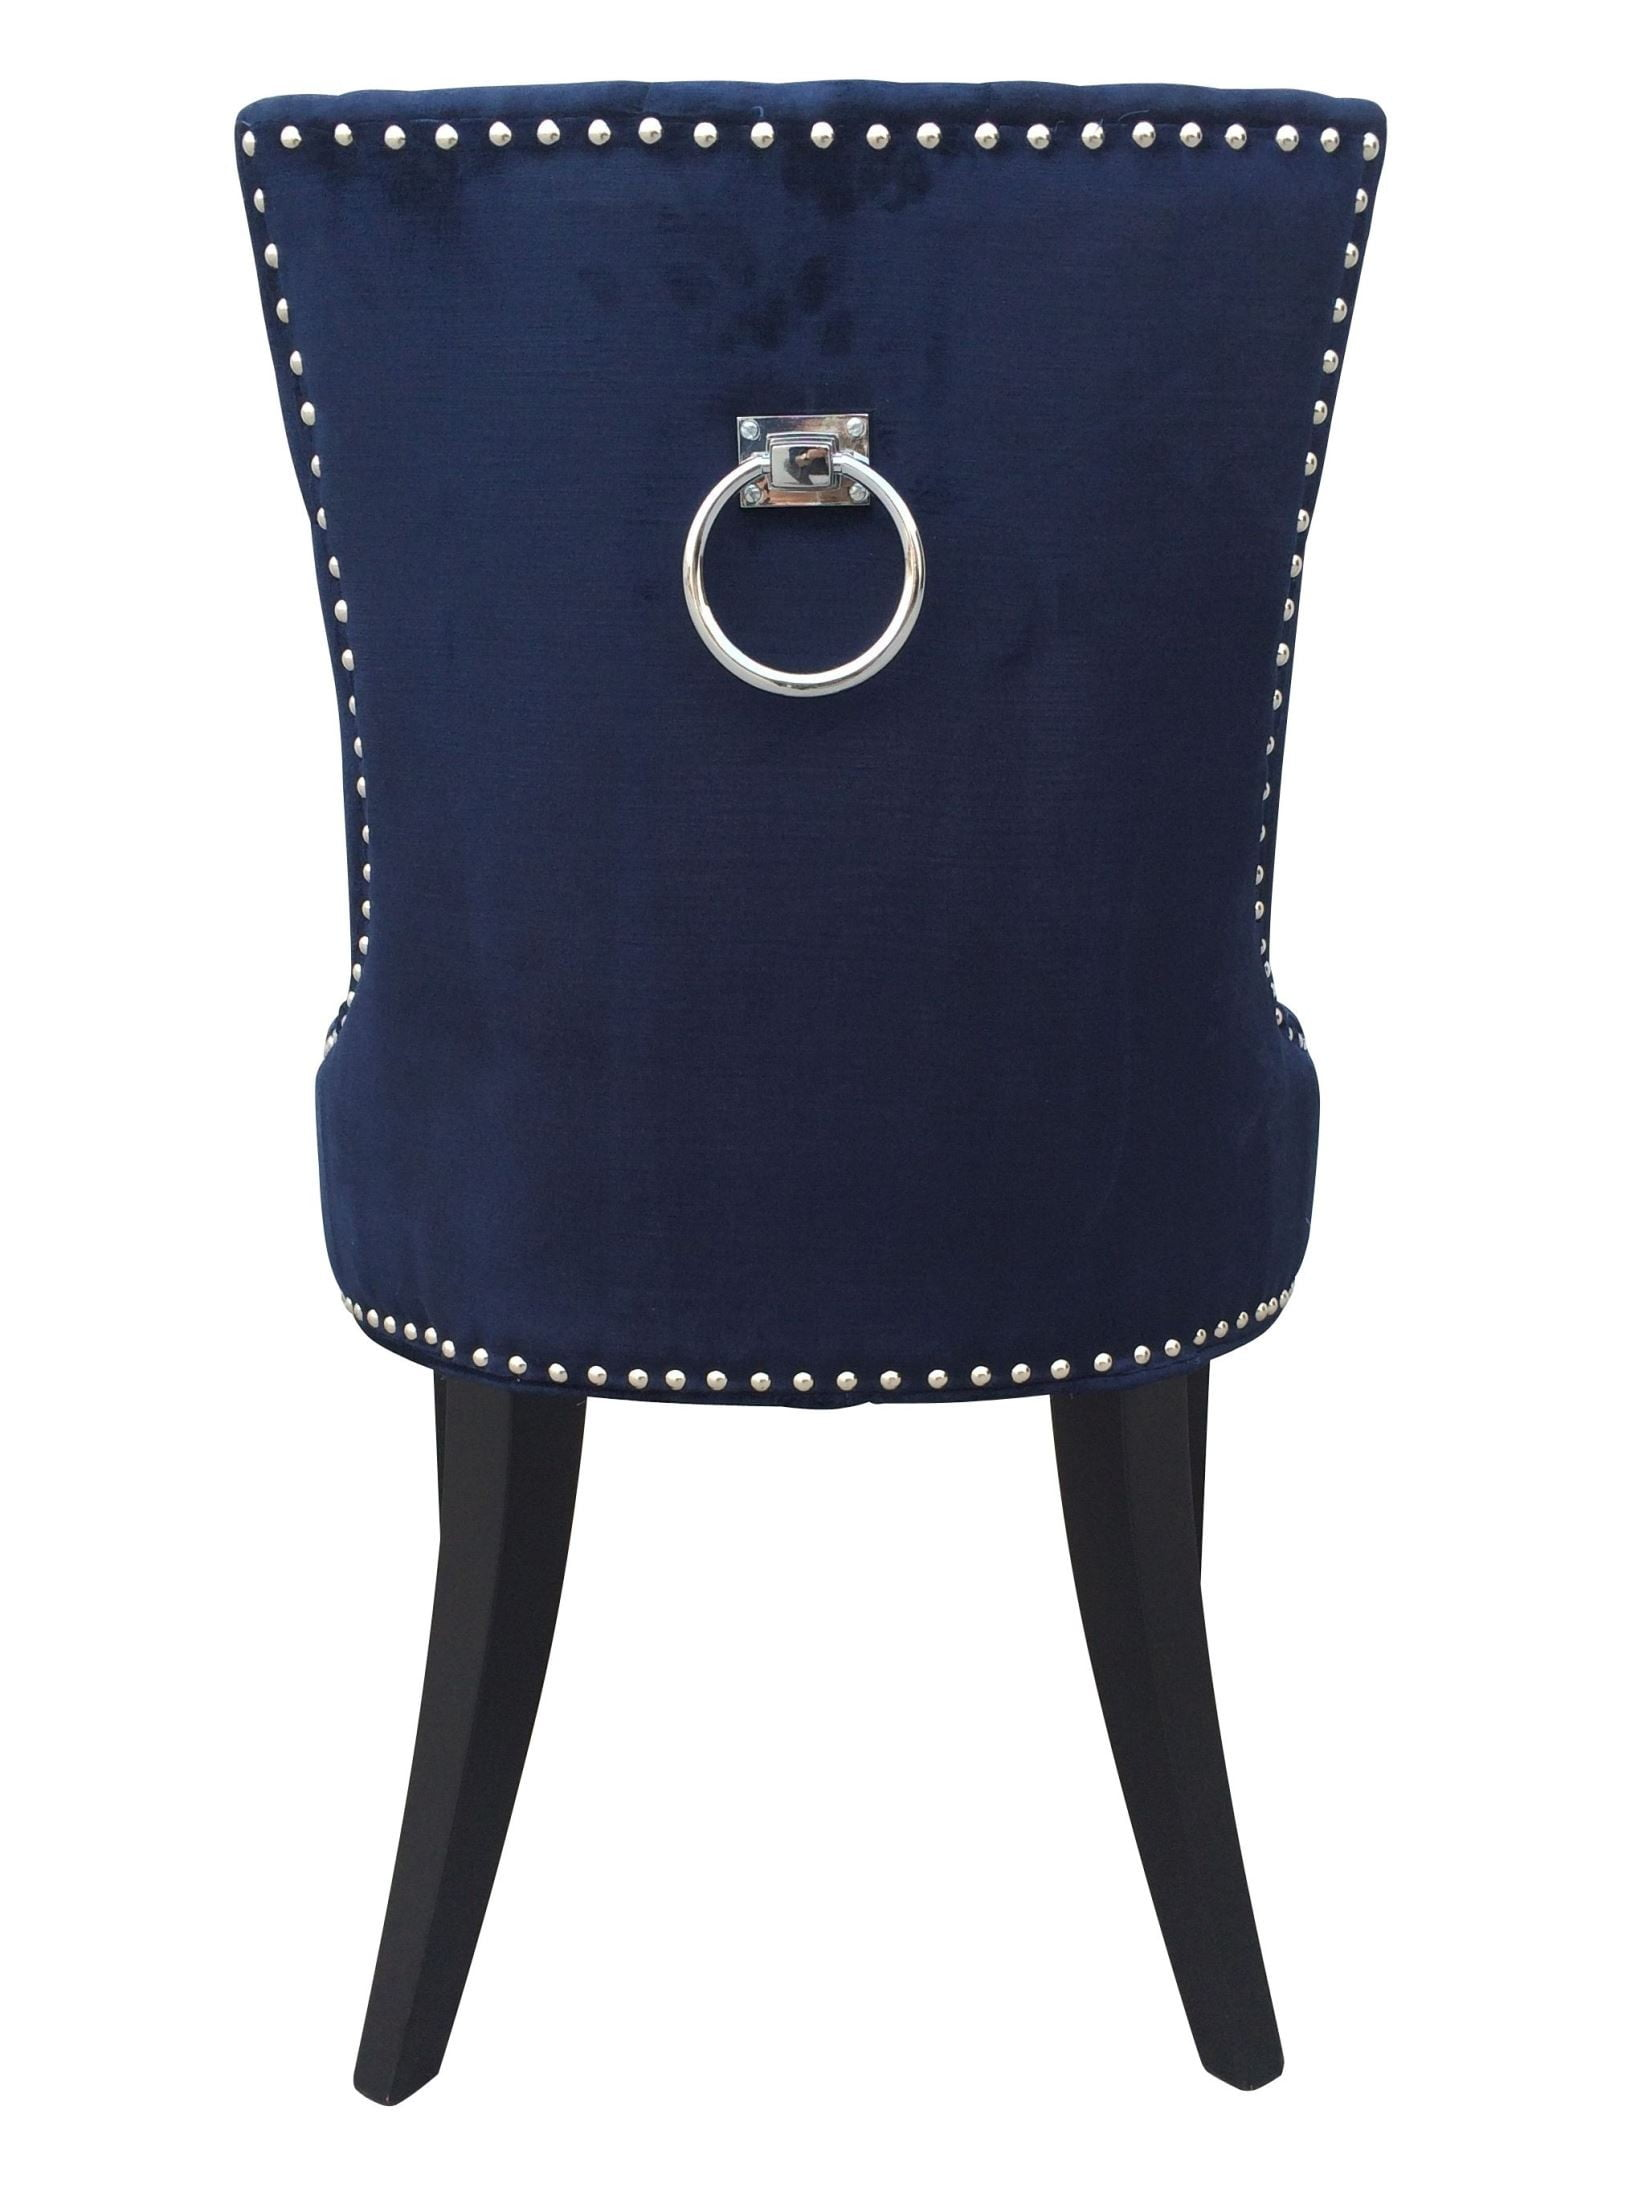 Uptown Navy Velvet Dining Chair Set of 2 from TOV D30